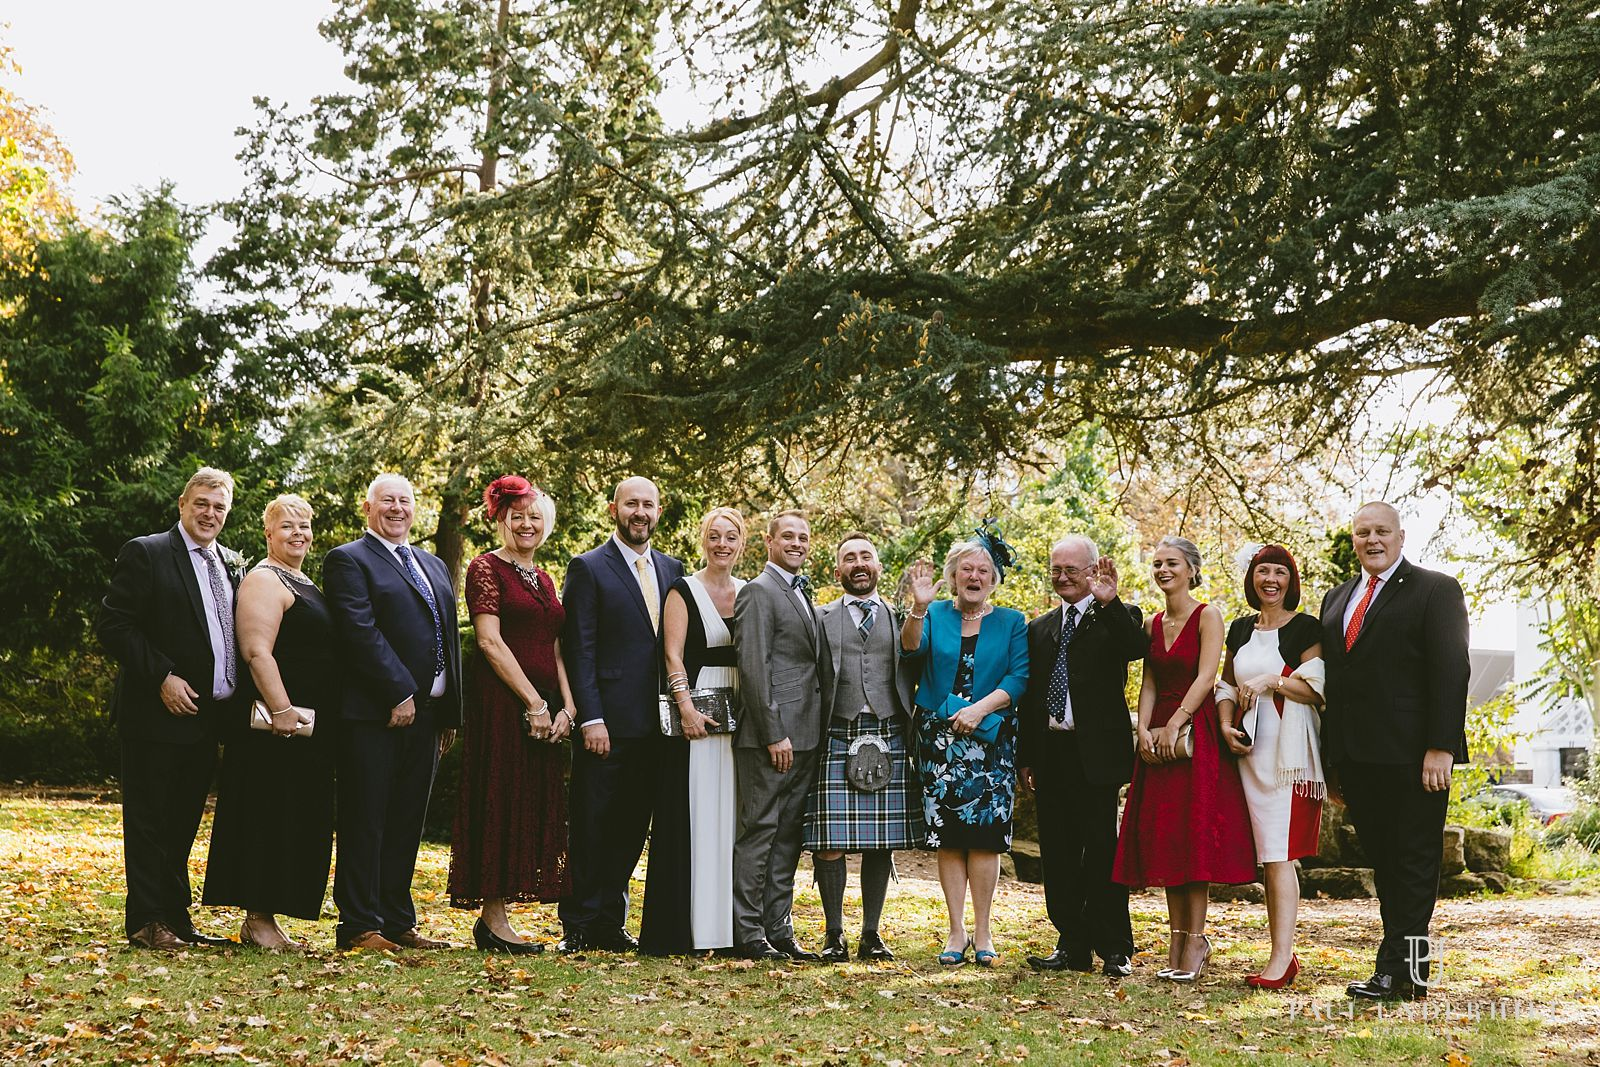 fun-group-photo-london-wedding